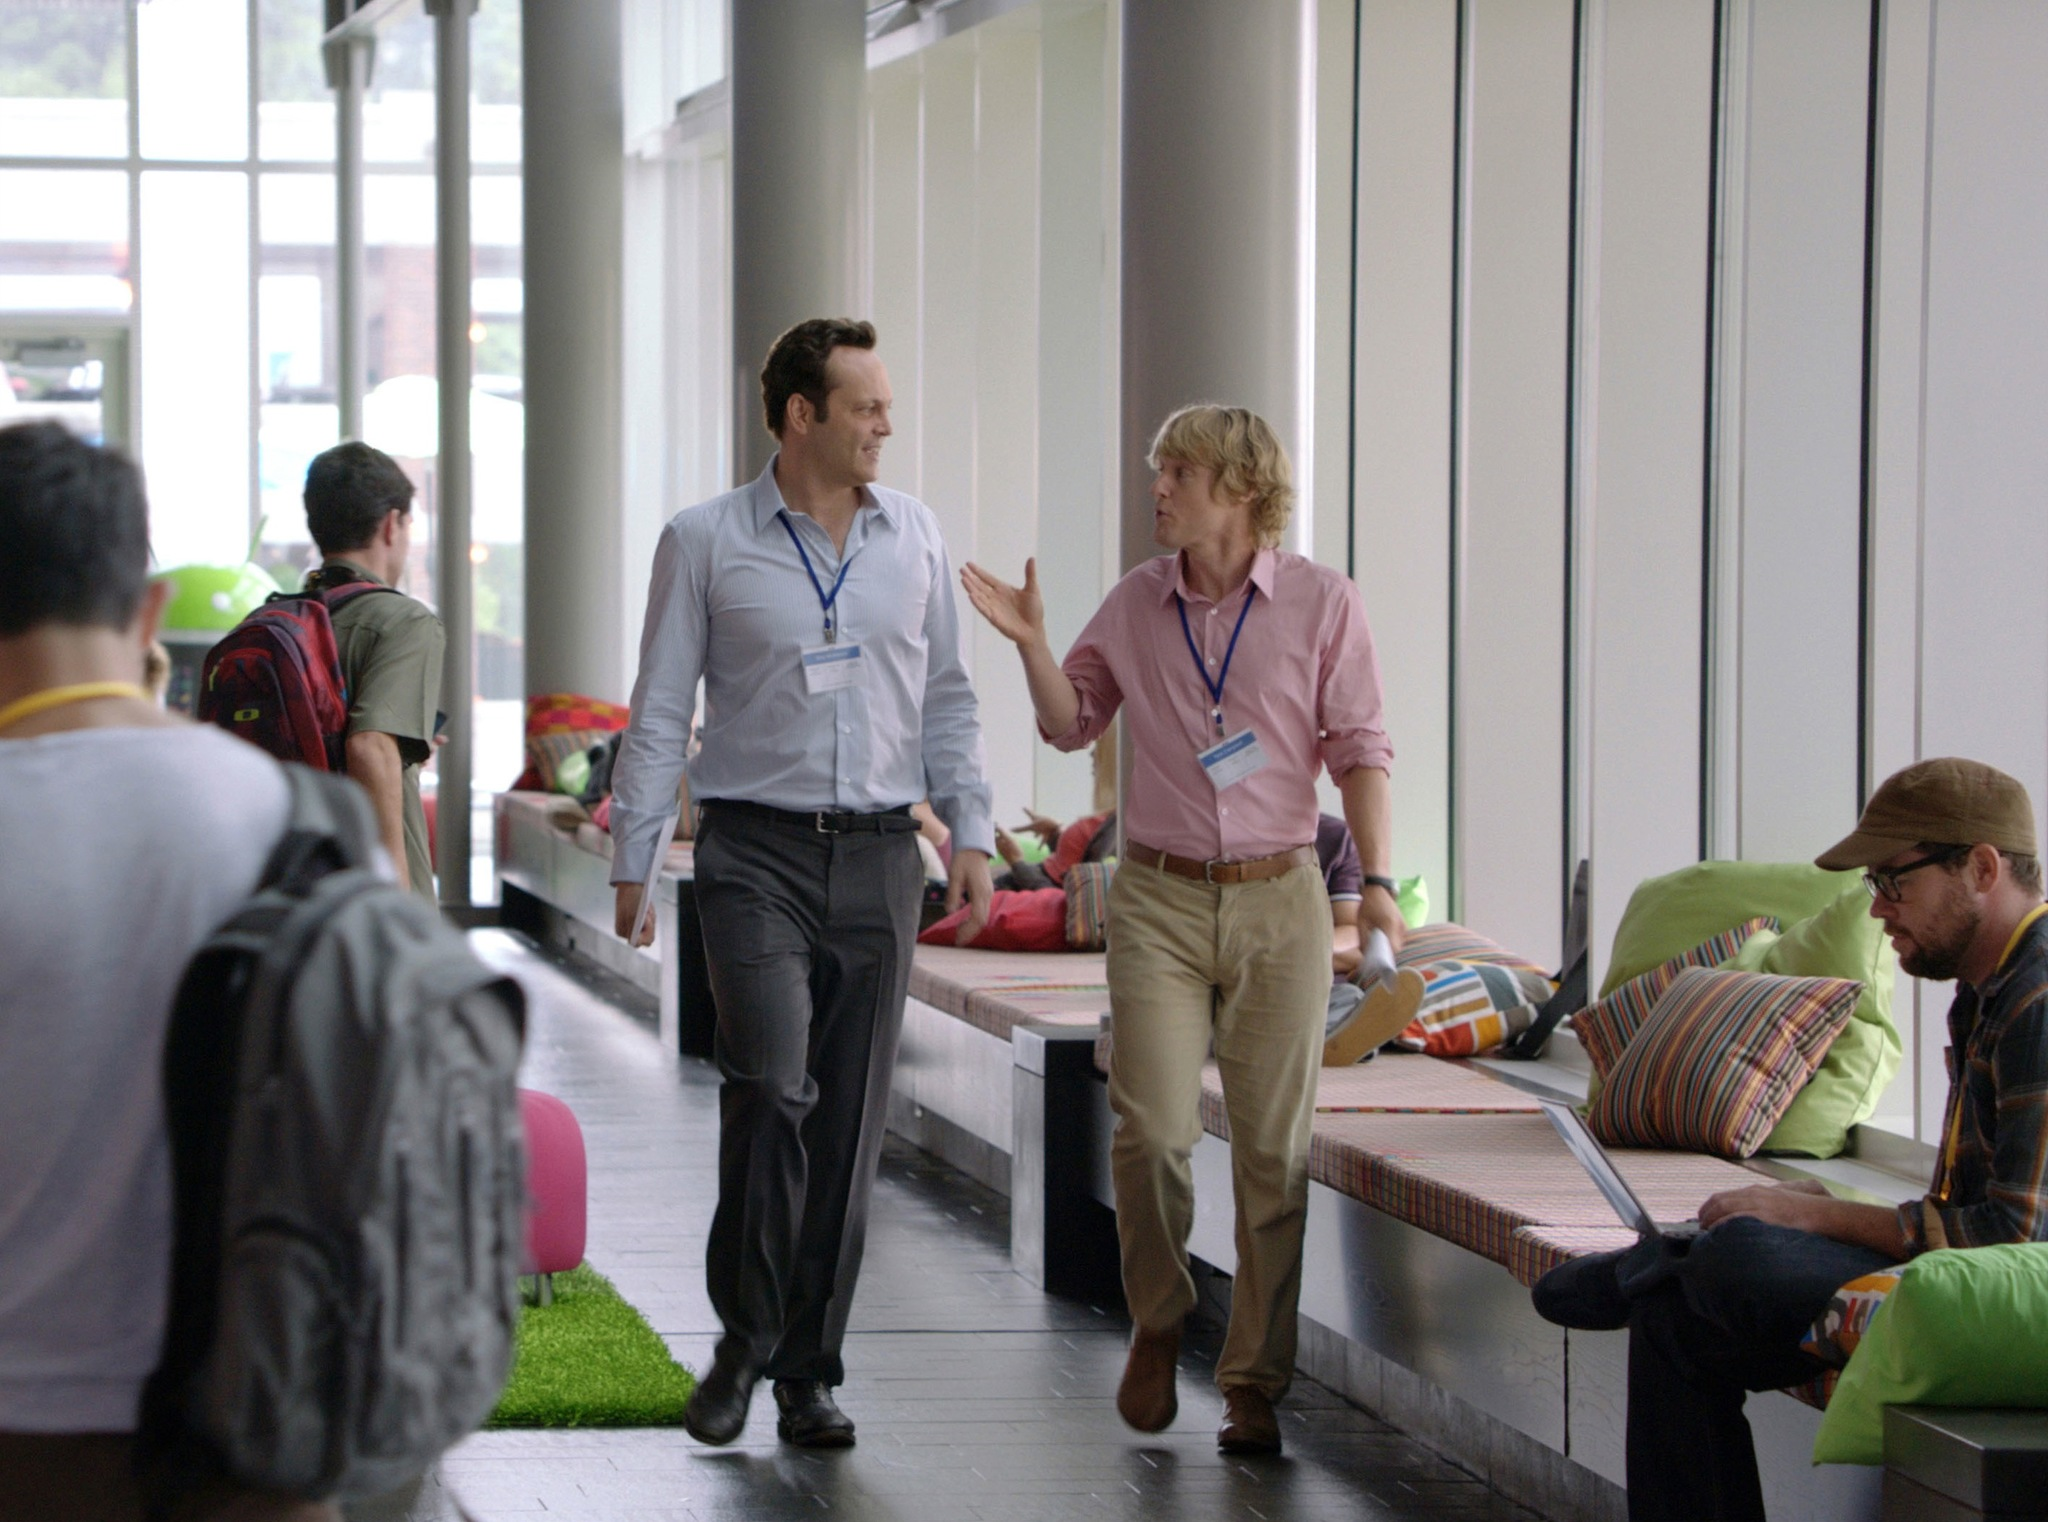 IT-110 - Google interns Billy (Vince Vaughn) and Nick (Owen Wilson) strategize during a walk-a-talk through the company's hallways.